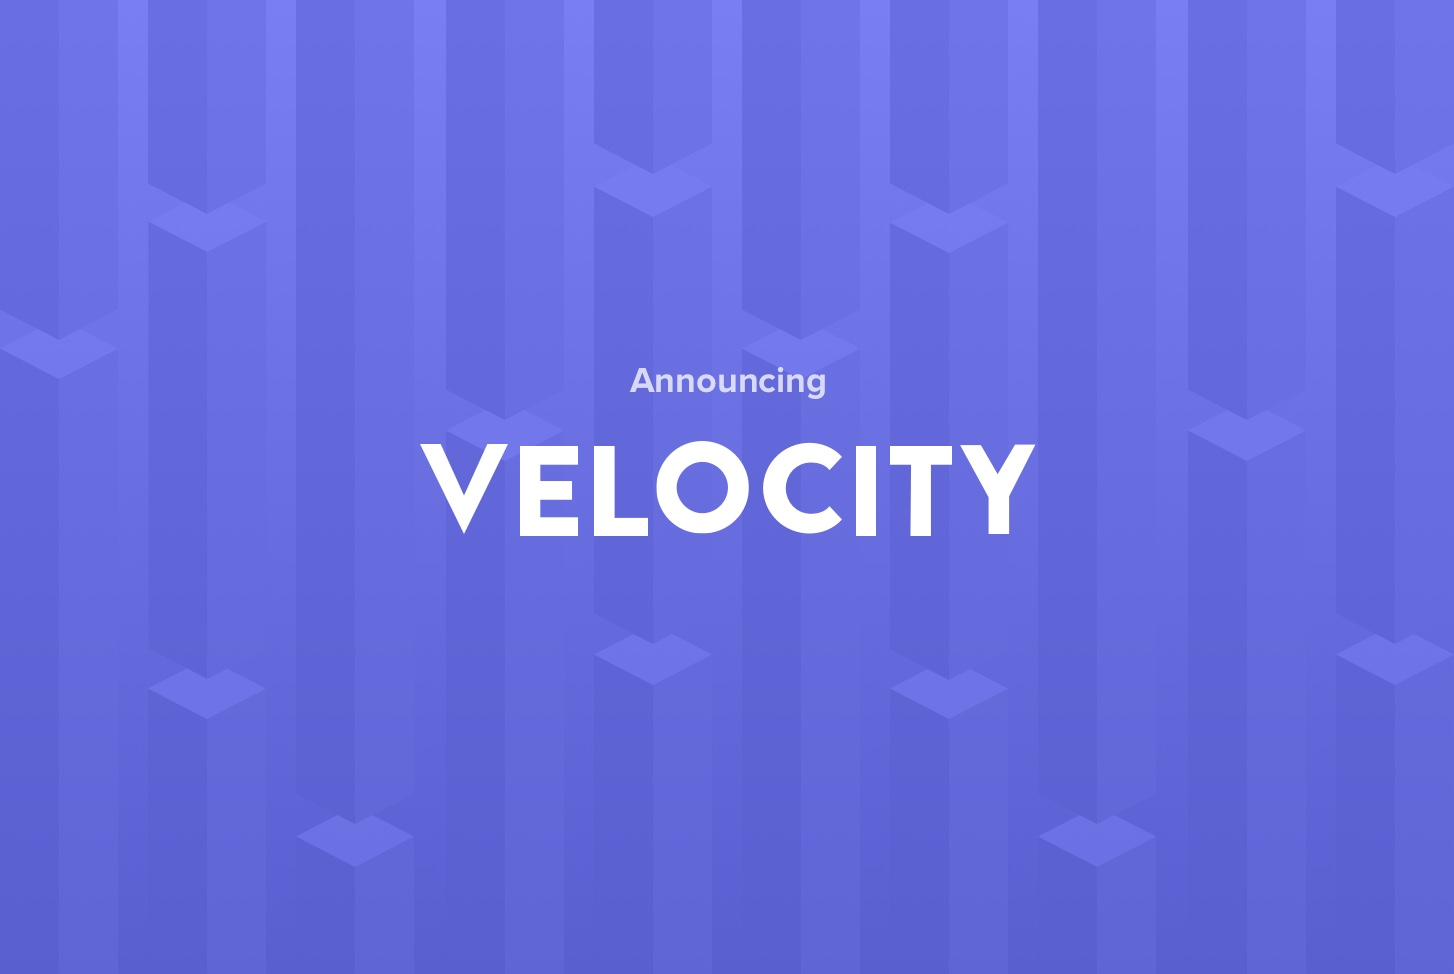 Announcing Velocity